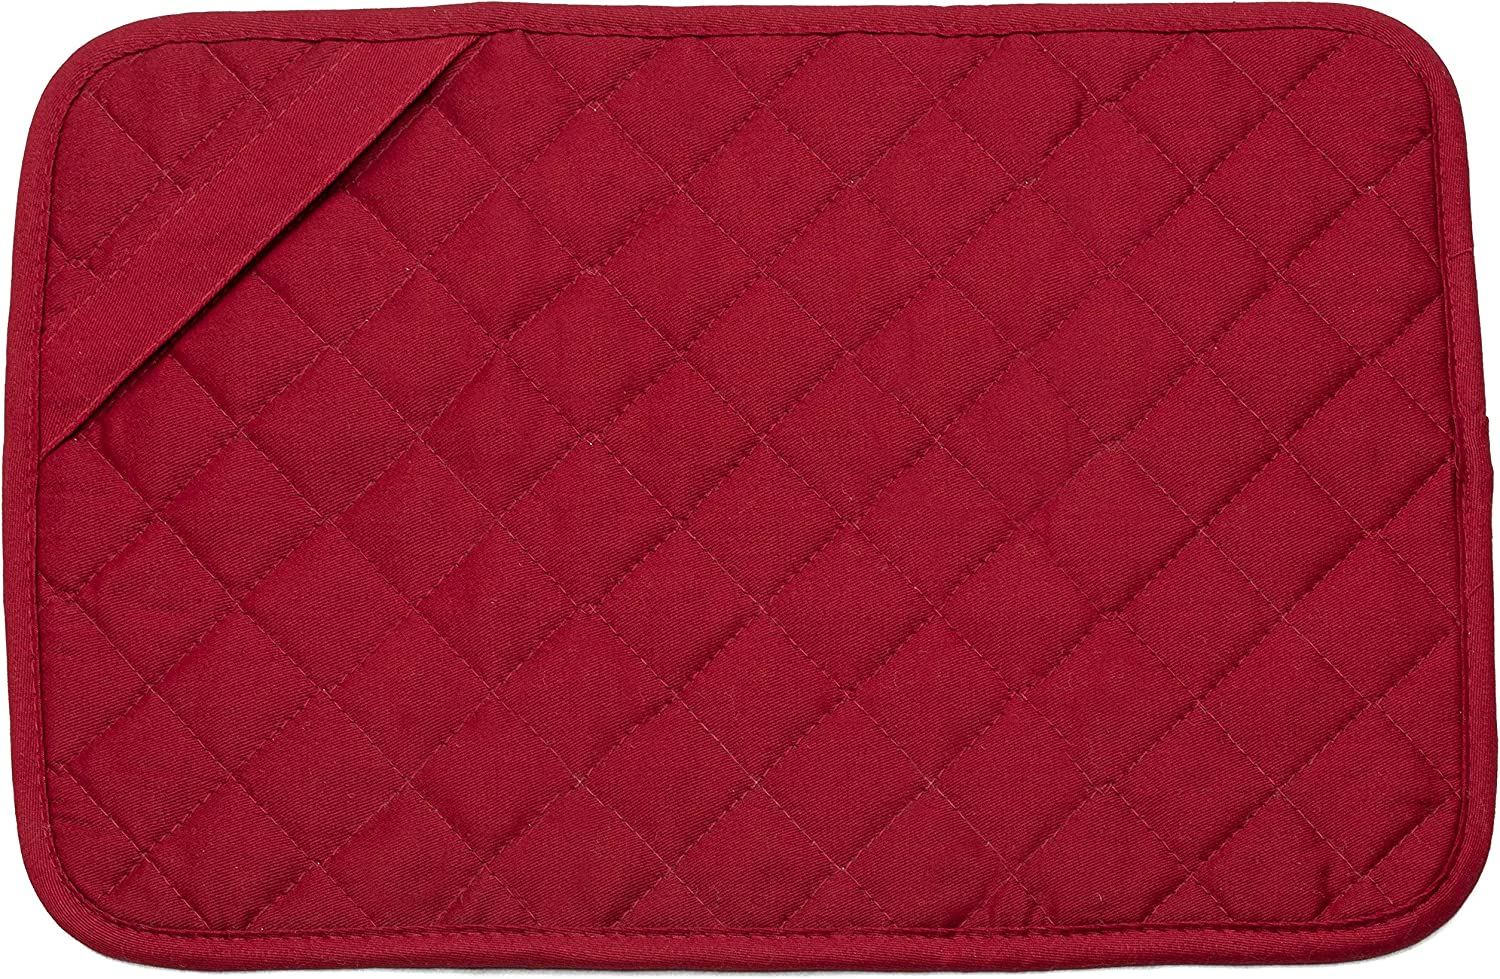 S&T INC. Heat-Resistant Trivet Mat, 11 by 17-Inch, Red, 11